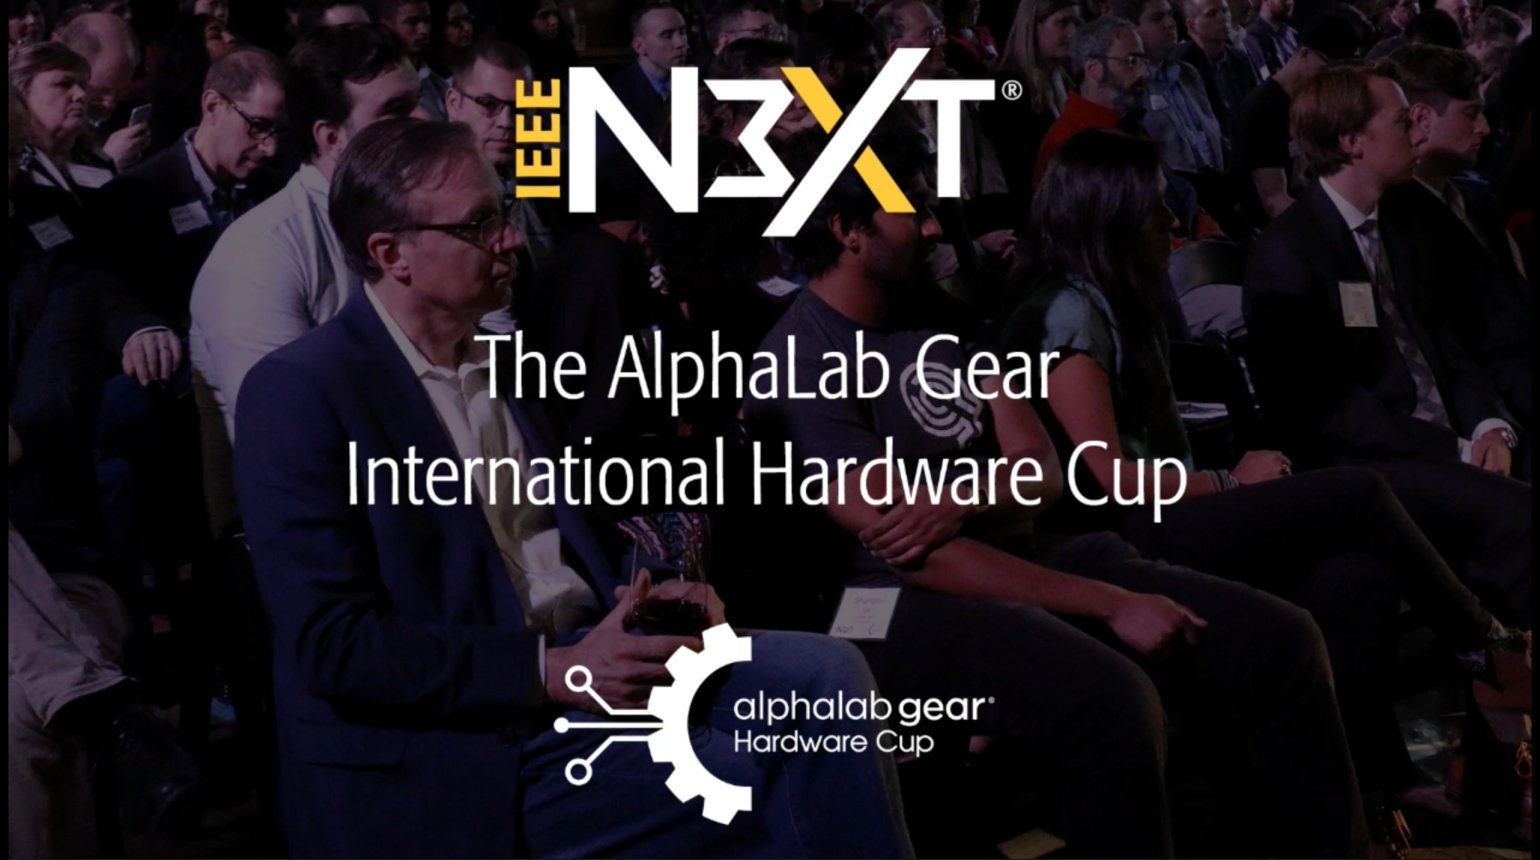 The 2018 AlphaLab Gear Hardware Cup International Finals